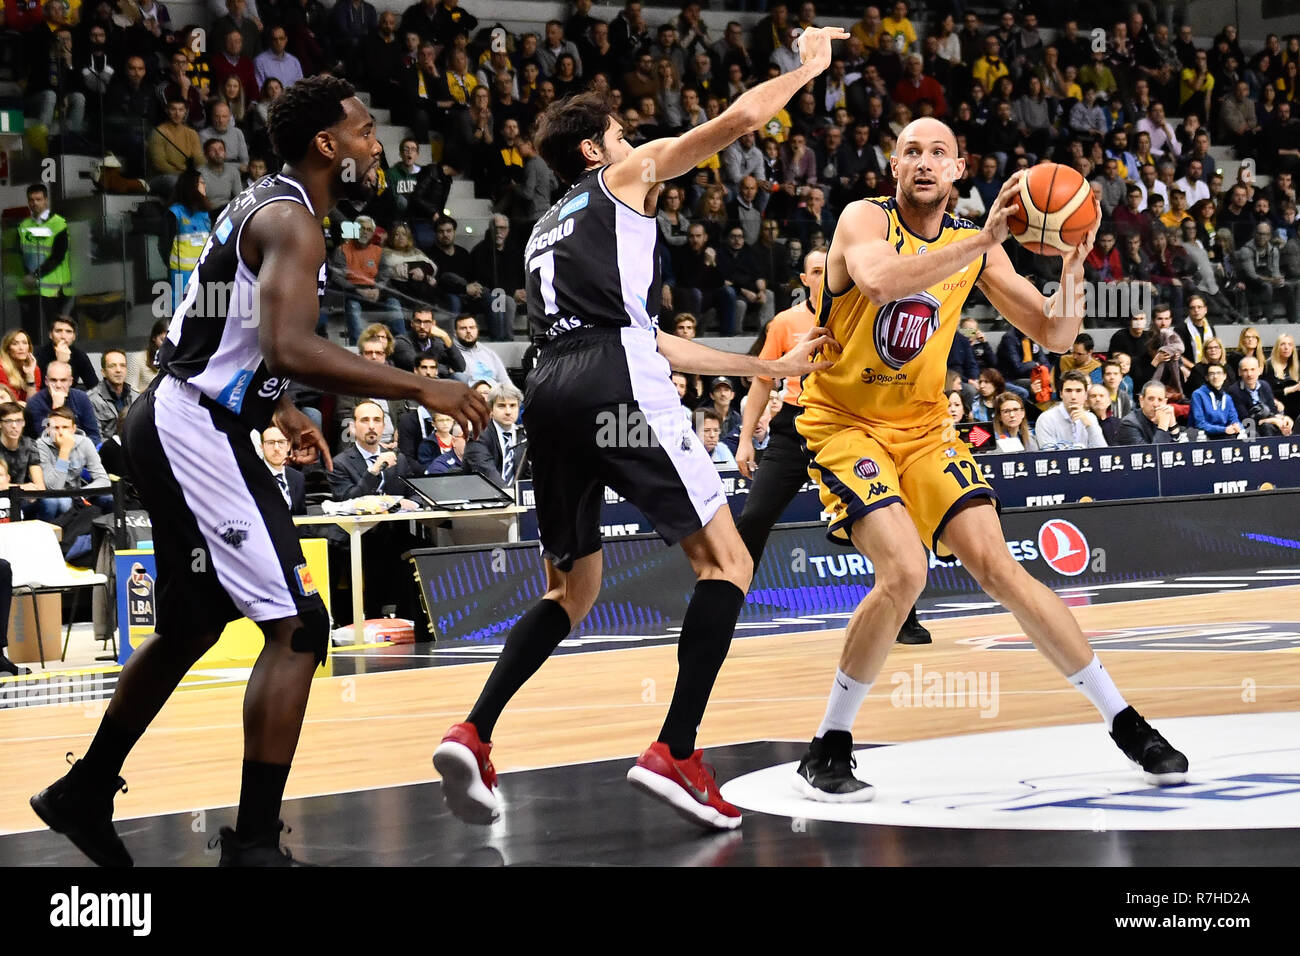 Turin, Italy. 8th Dec 2018. Marco Cusin (Auxilium Fiat Torino) during the LEGA BASKET SERIE A 2018/19 basketball match between FIAT AUXILIUM TORINO vs DOLOMITI TRENTO at PalaVela on 8th Dicember, 2018 in Turin, Italy. Credit: FABIO PETROSINO/Alamy Live News - Stock Image